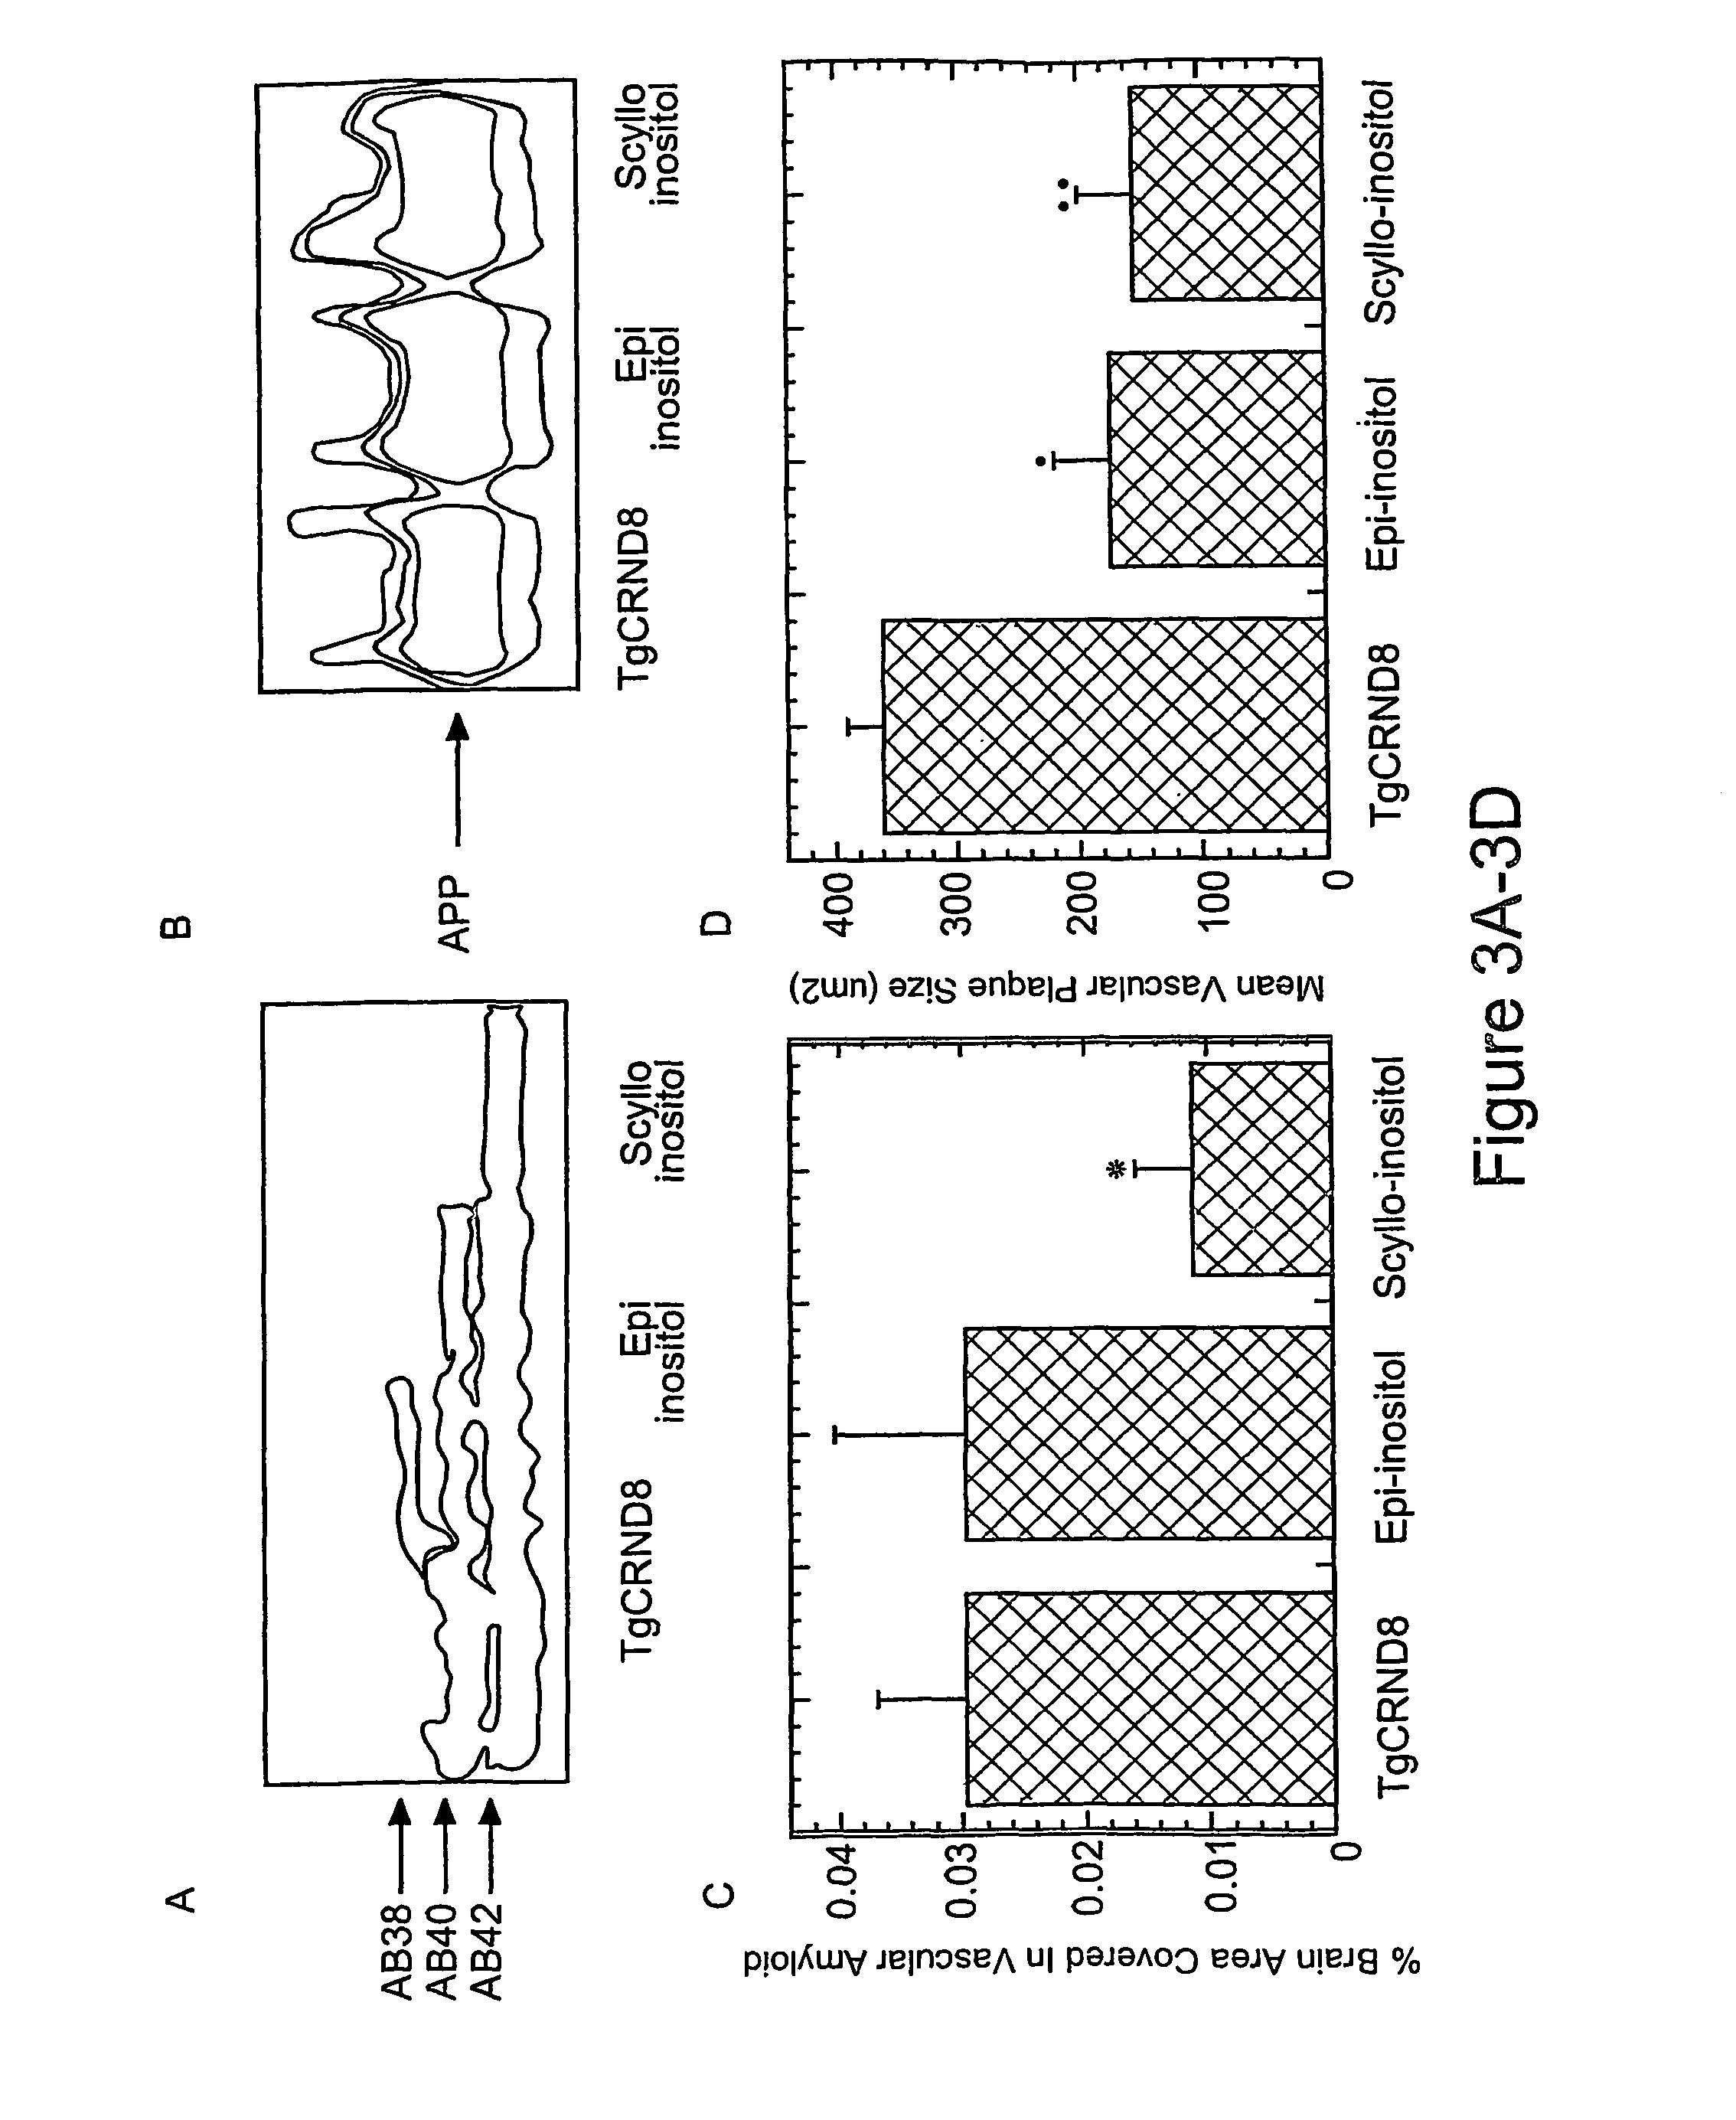 US8859628B2 - Method for preventing, treating and diagnosing